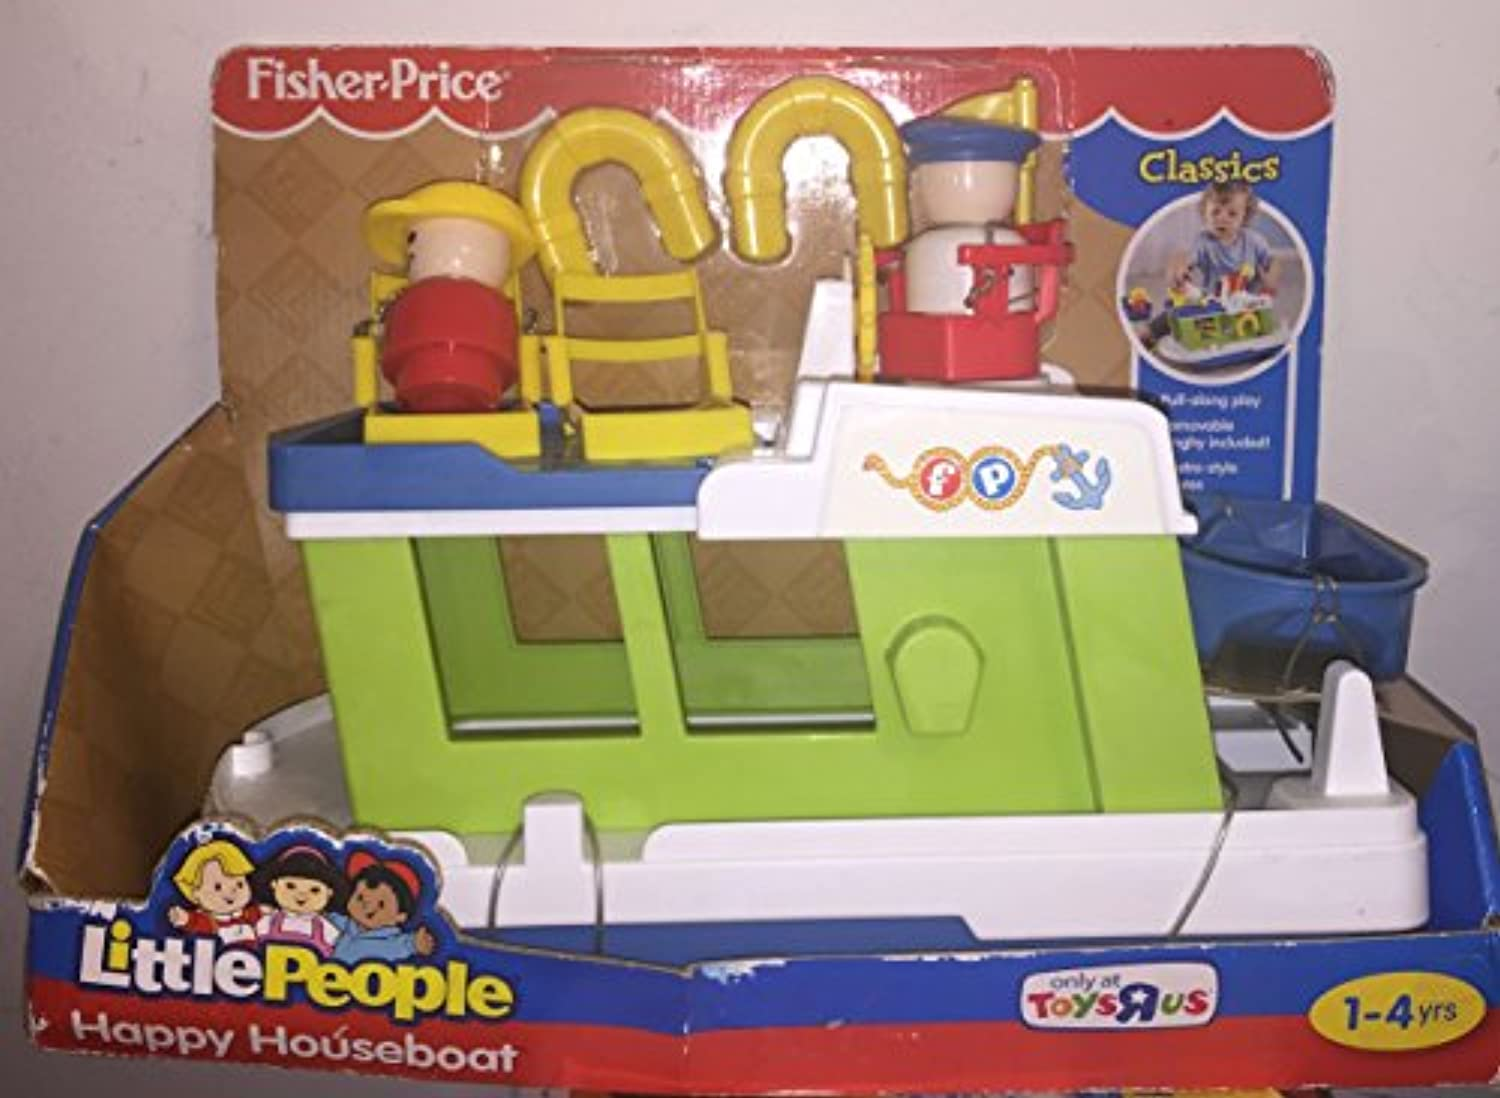 Little People Happy Houseboat